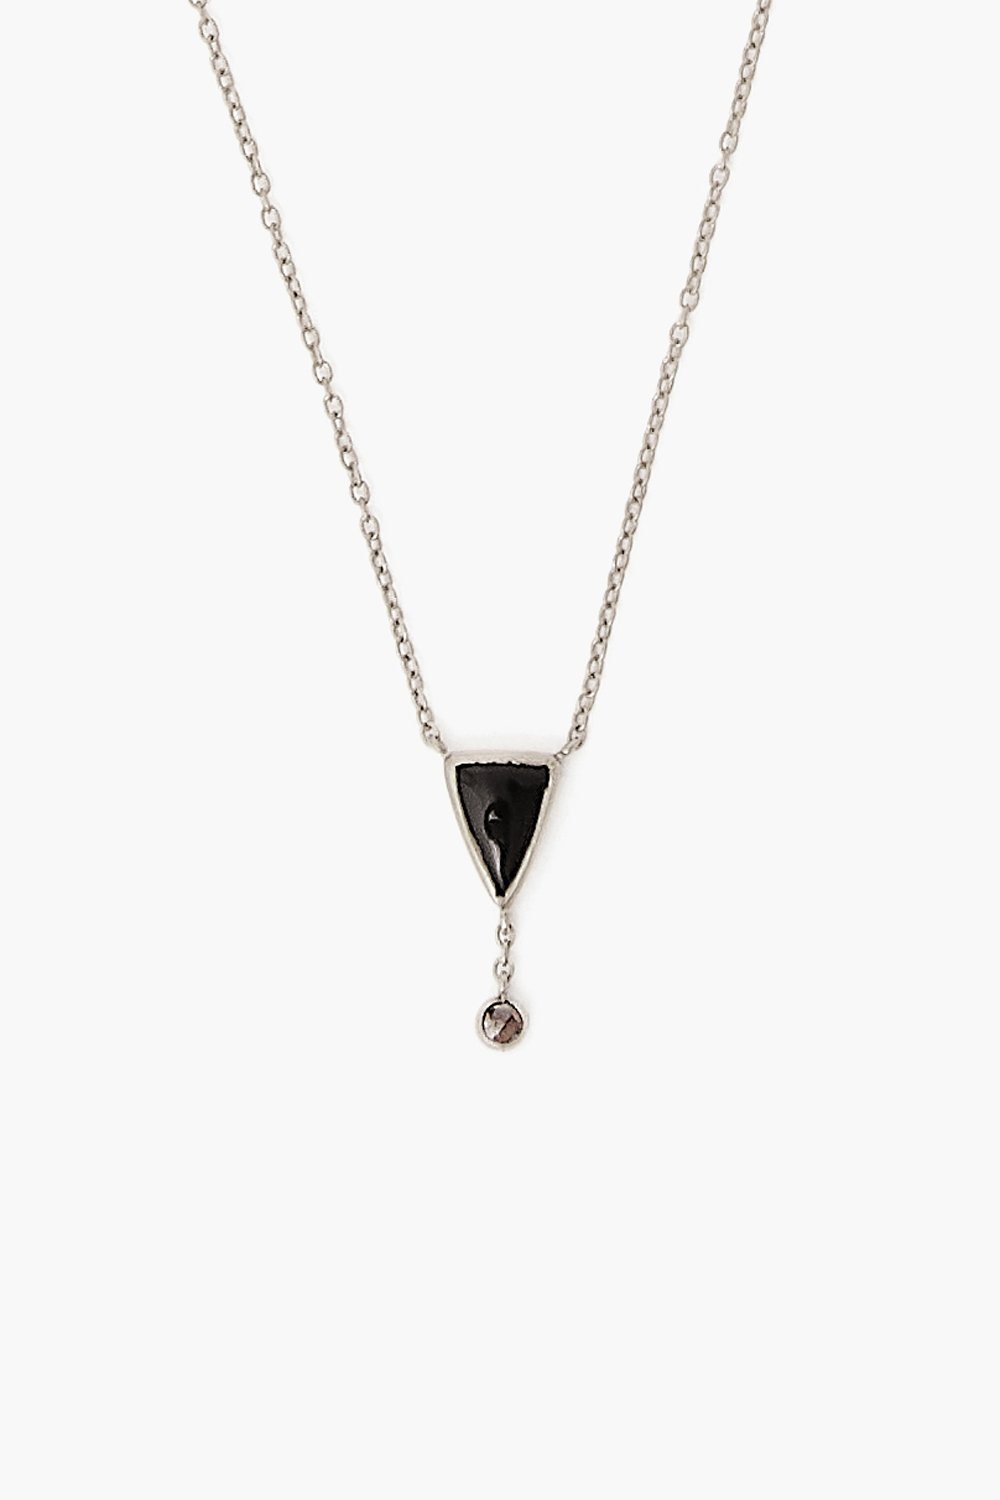 Black Agate Chip and Champagne Diamond Silver Necklace